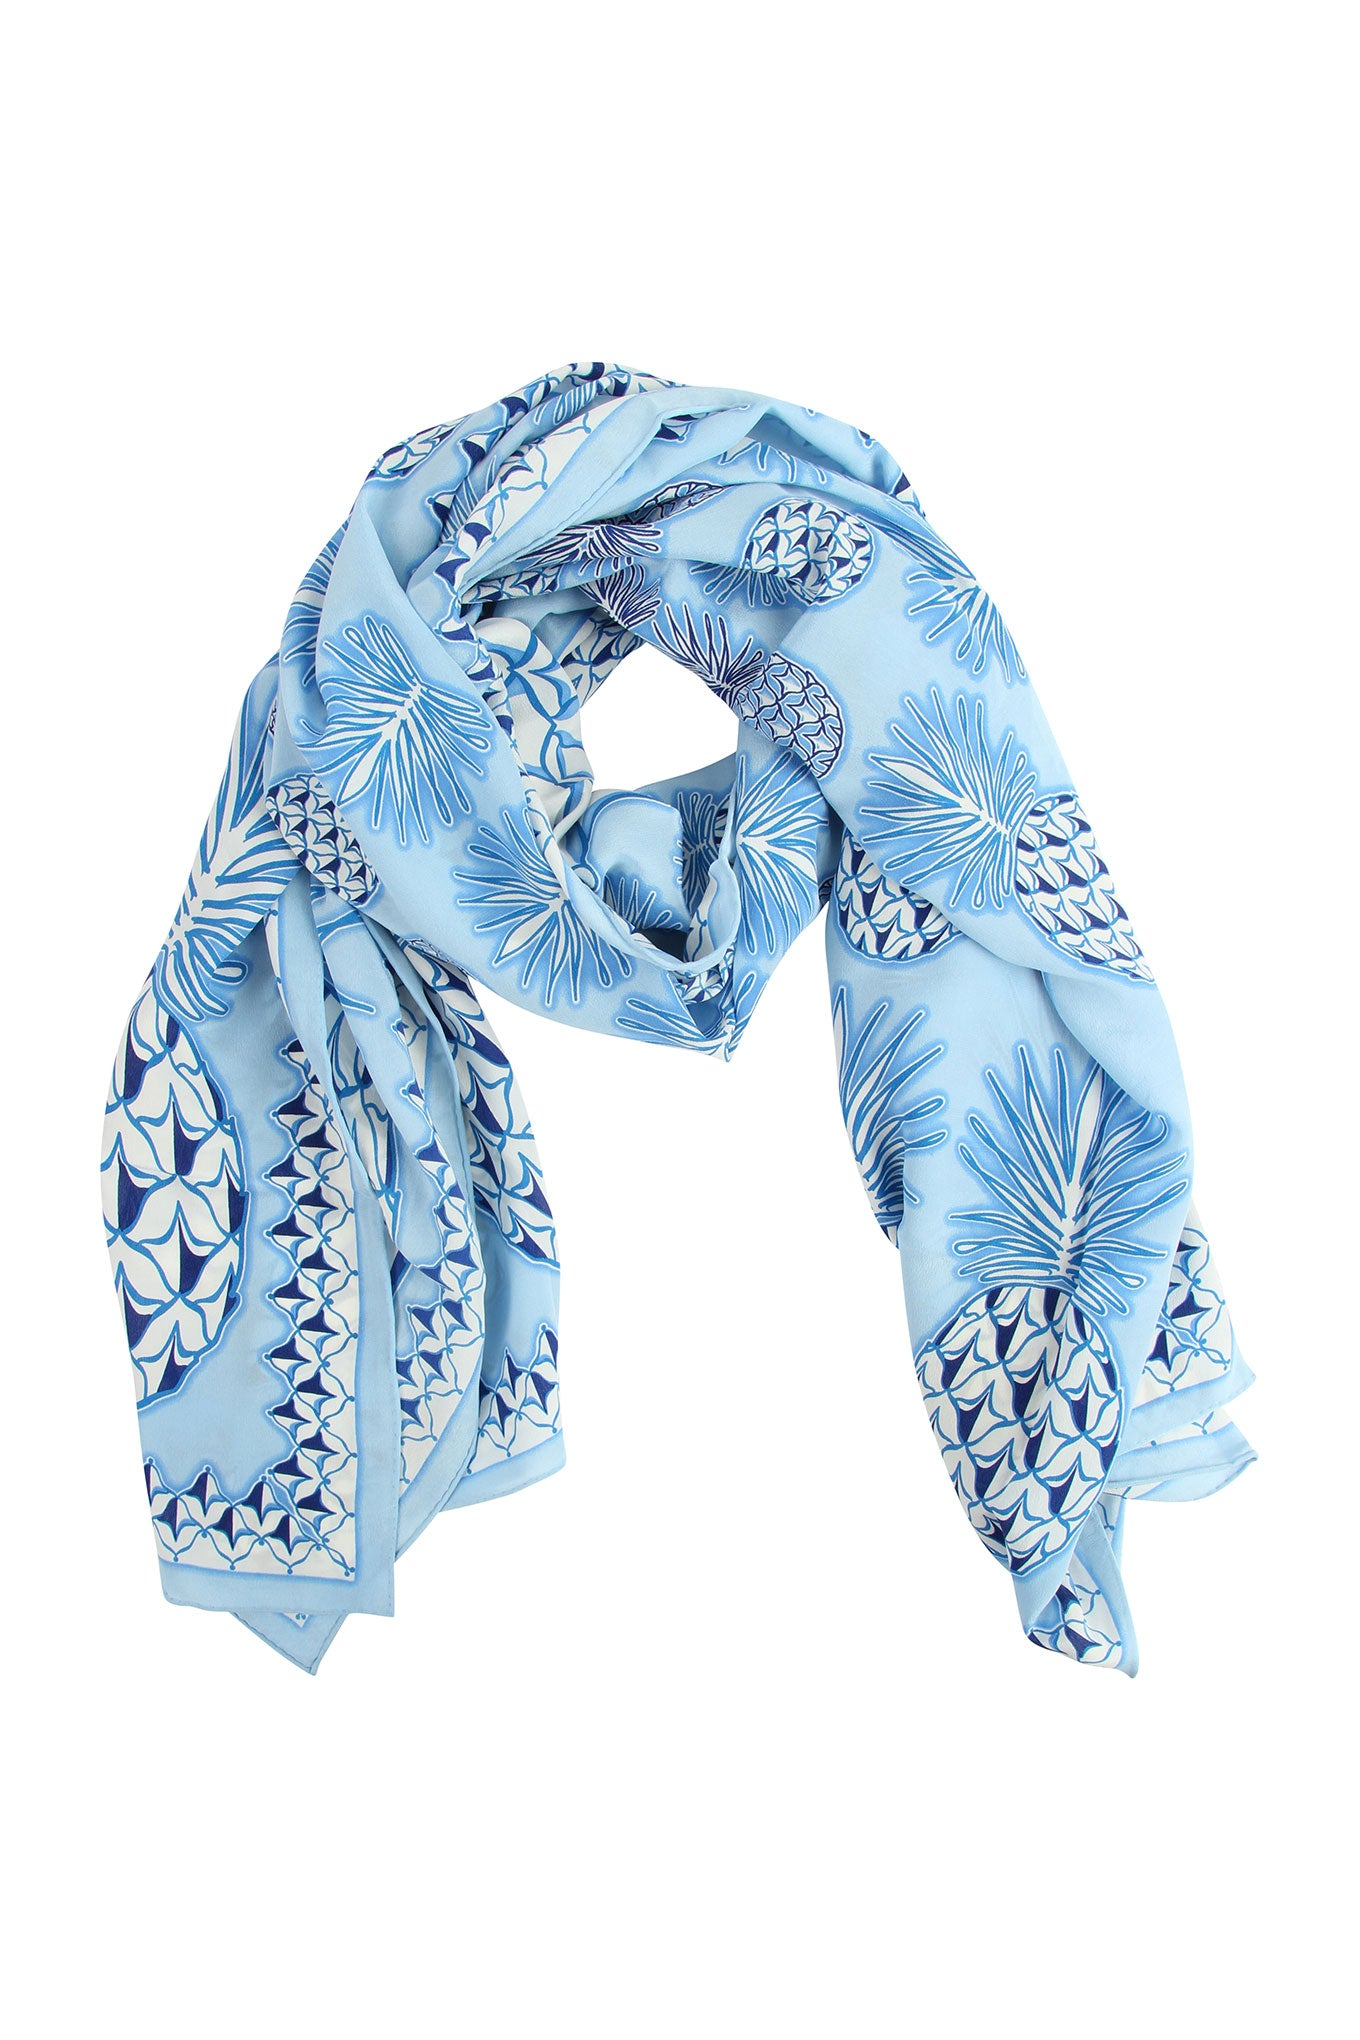 Lotty B Sarong in Silk Crepe-de-Chine: PINEAPPLE - BLUE rolled scarf